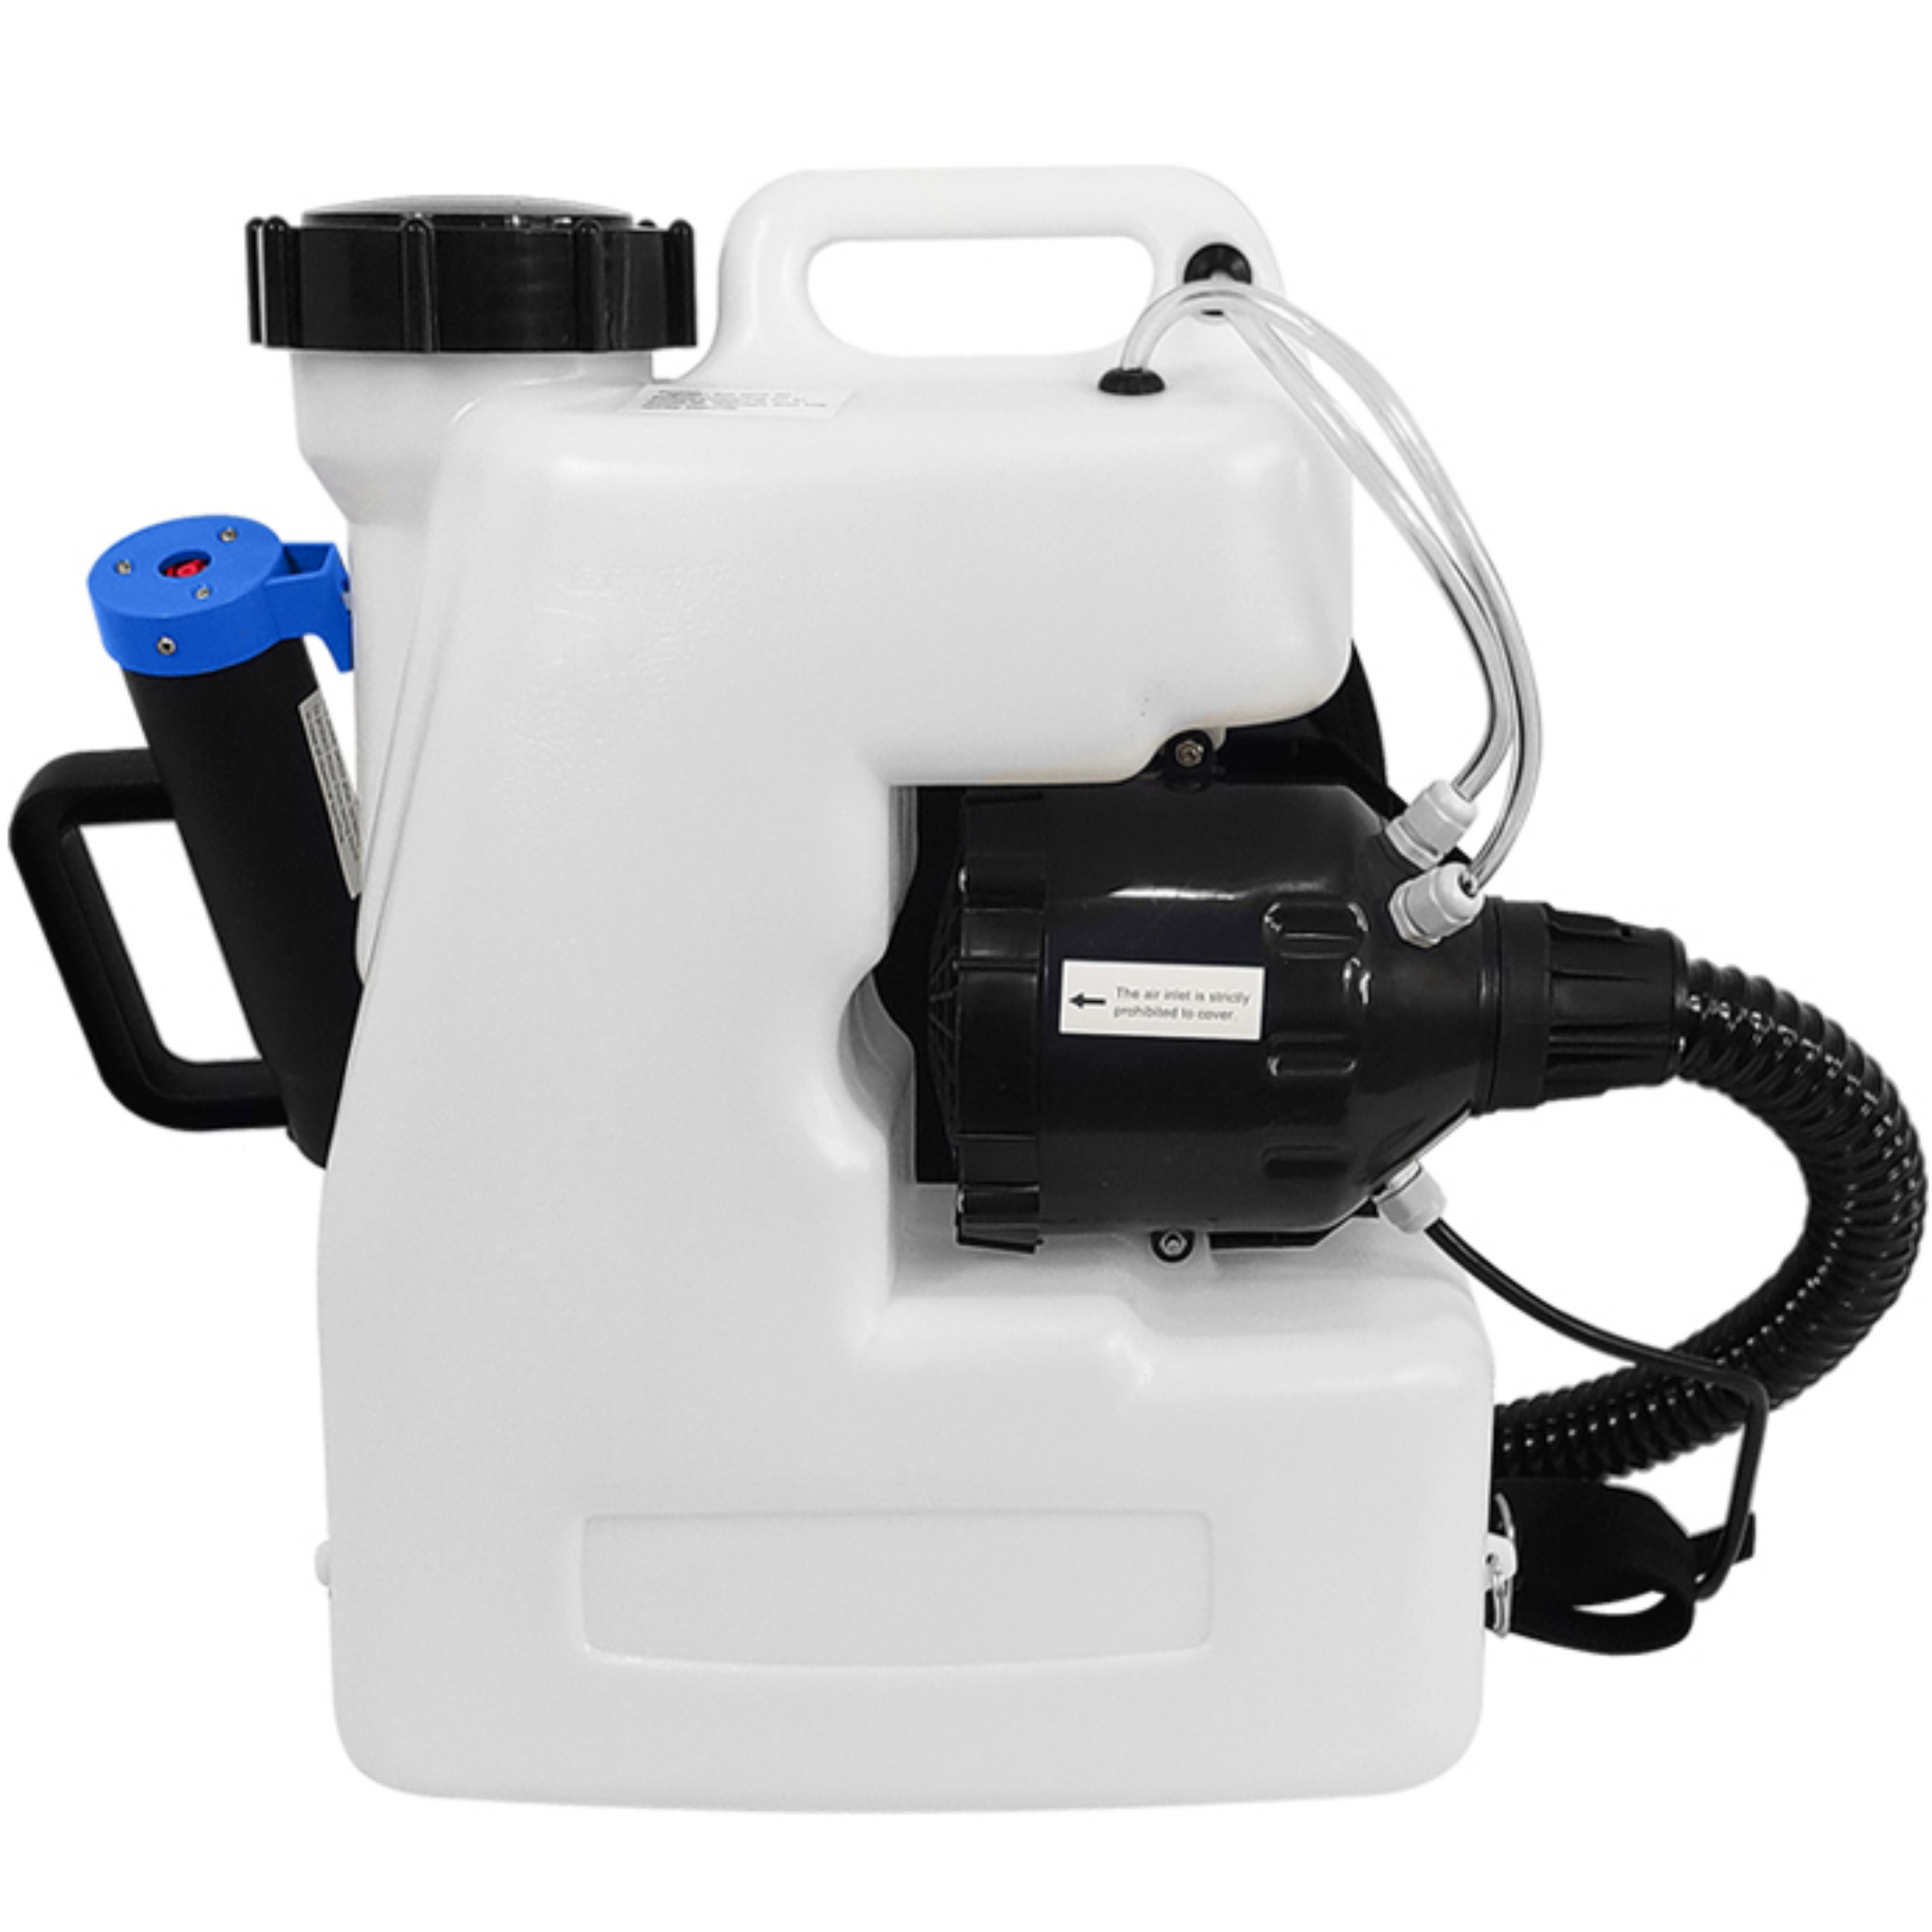 Yanto ULV Fogger Sprayer - Portable Fogging Machine, Disinfectant Sprayer for Public Places/Garden/Industrial - 10L/12L/16L Capacity Foggers for Disinfection